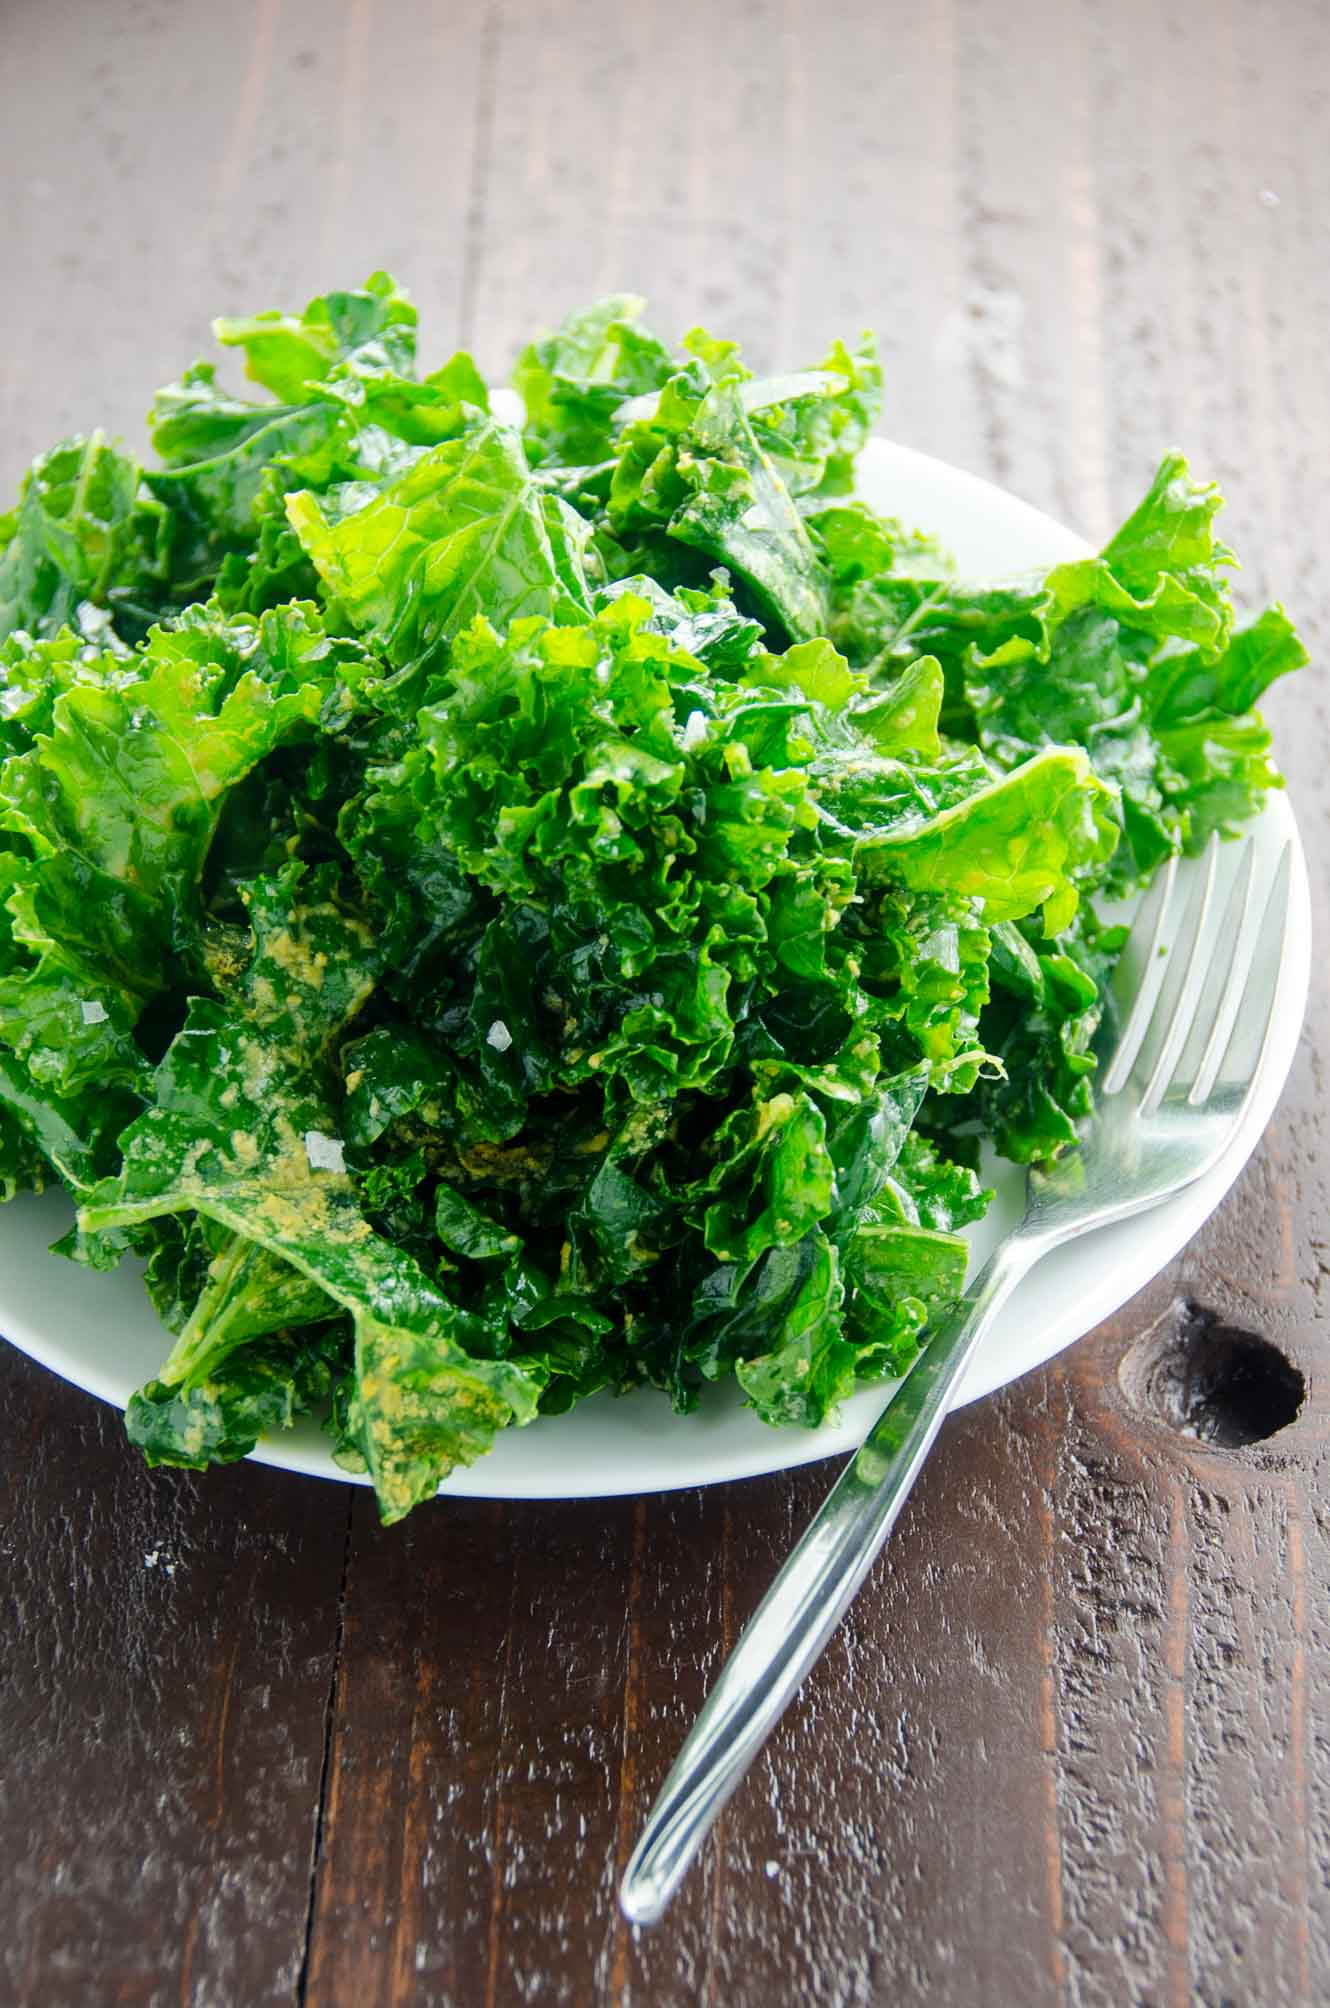 massaged kale salad with nutritional yeast (vegan) on a white plate